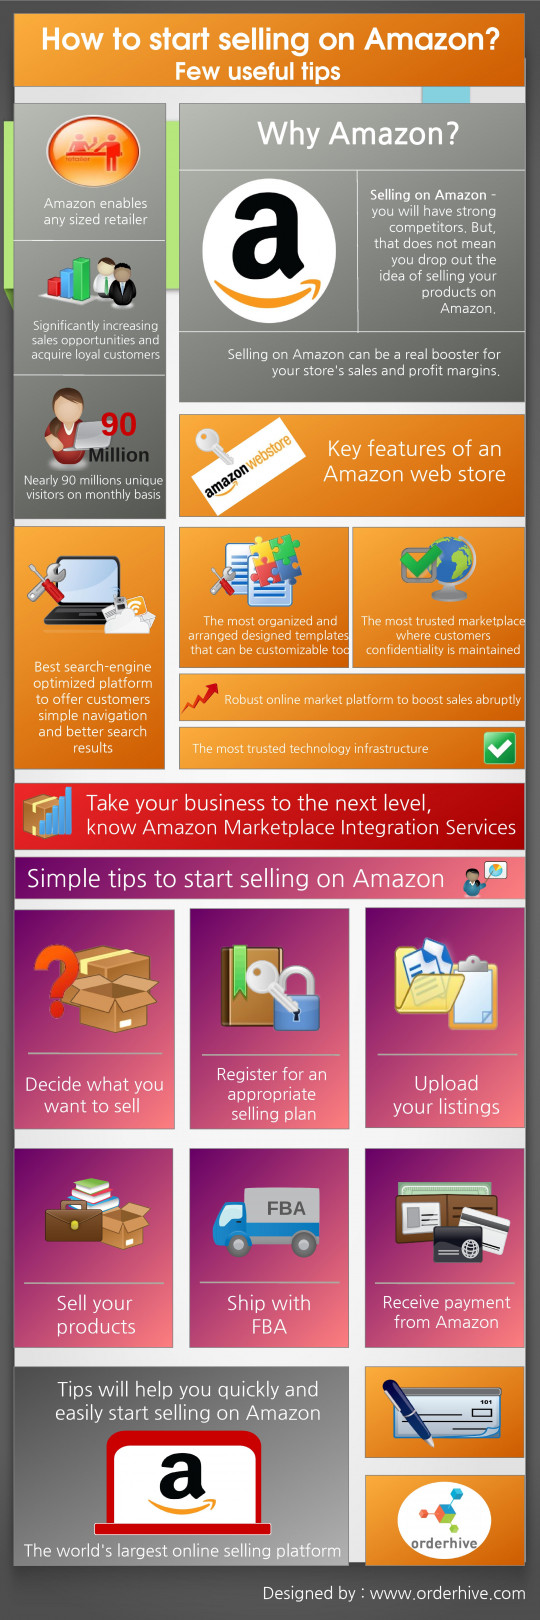 How to start selling on Amazon?